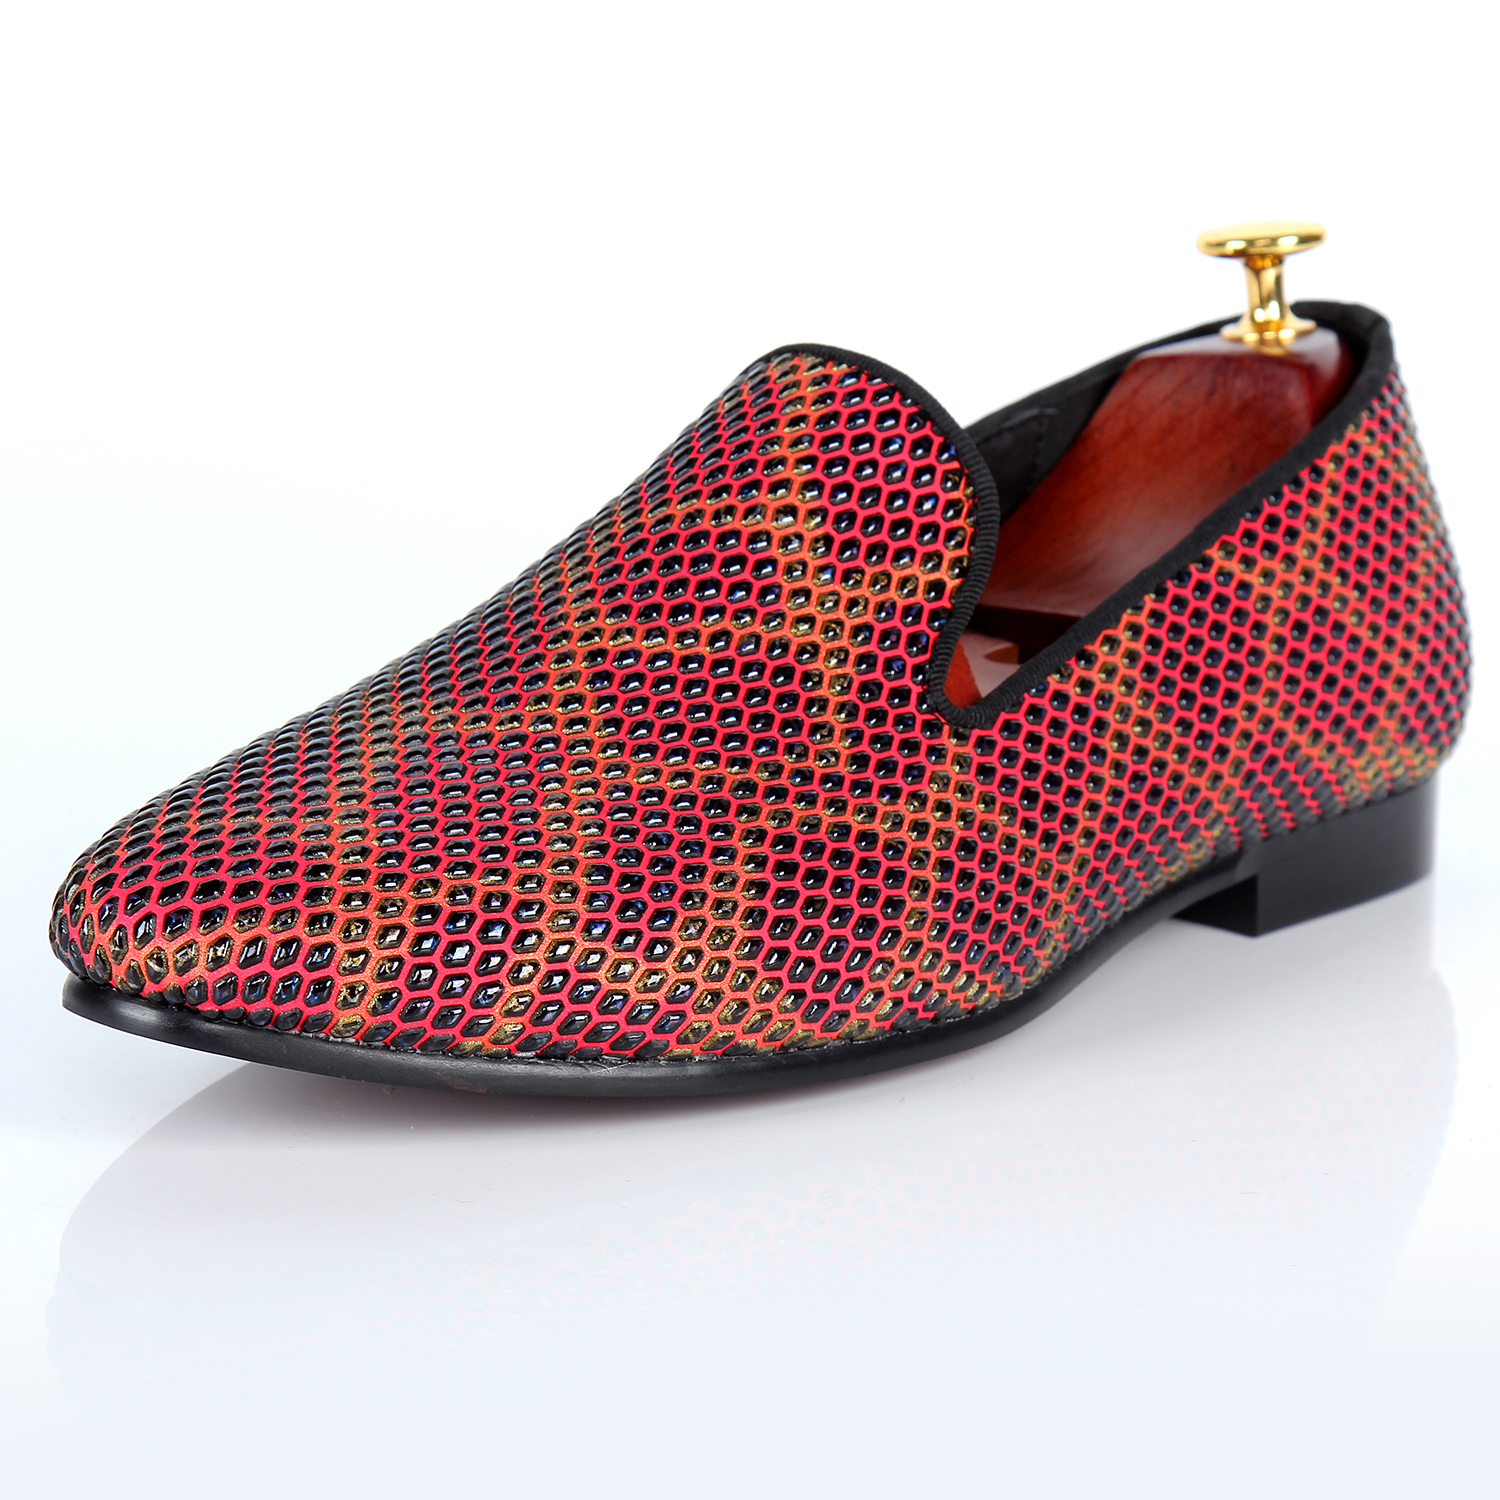 Harpelunde Men Polka Dot Shoes Slip On Dress Loafers Luxury Flats Size 10